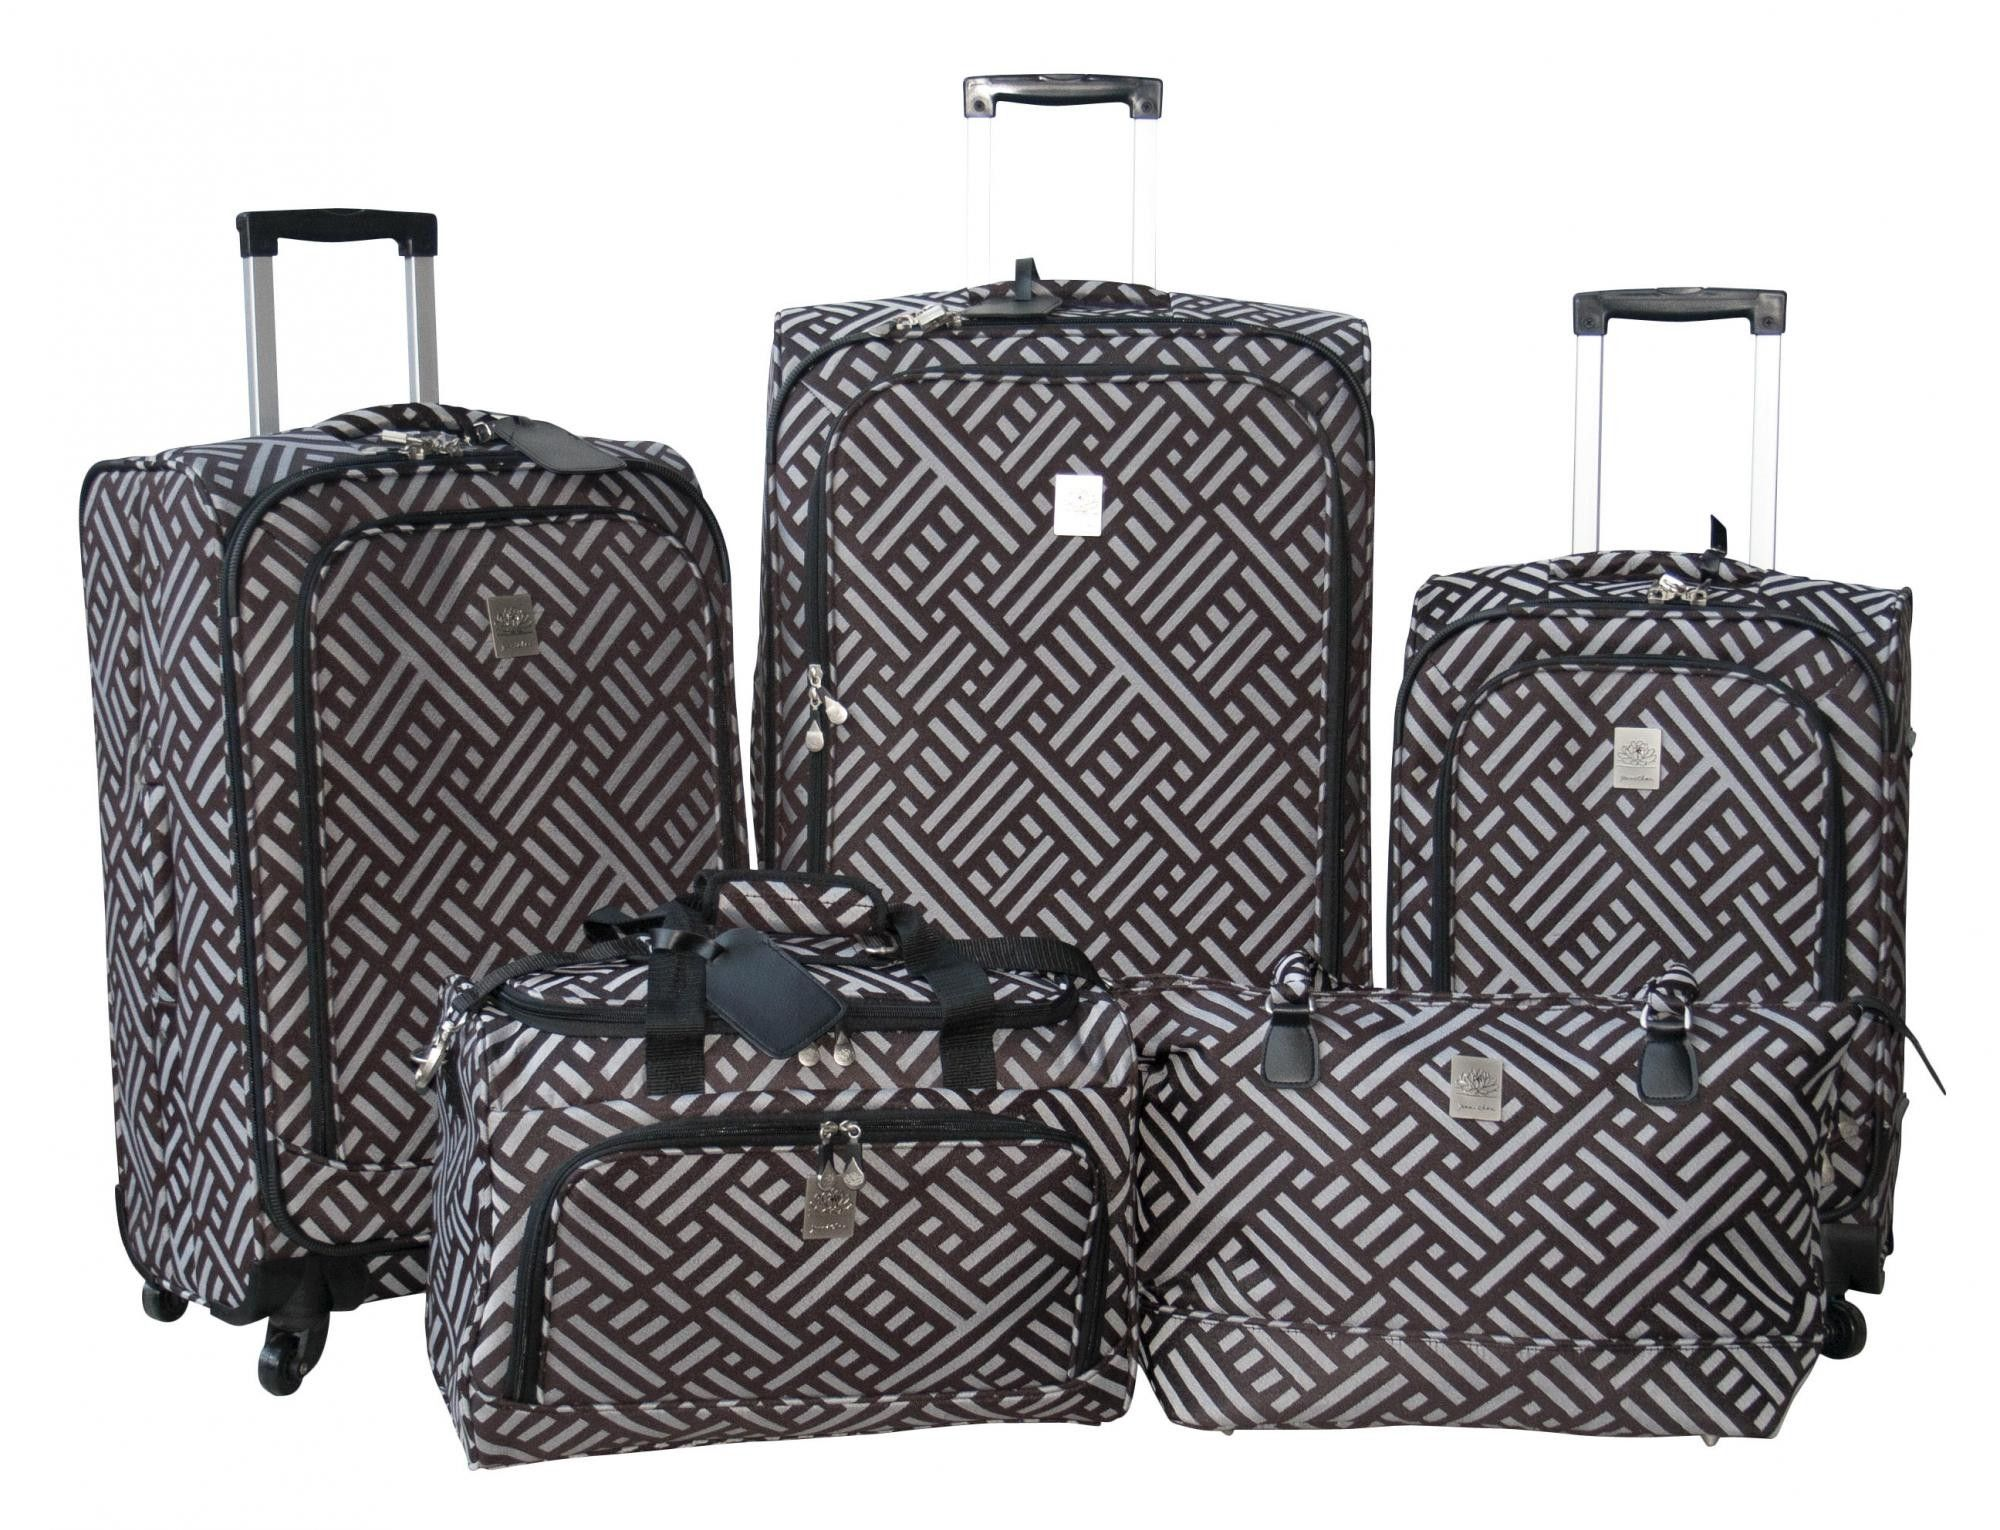 Designer Luggage Sets | Luggage | Pinterest | Designer luggage